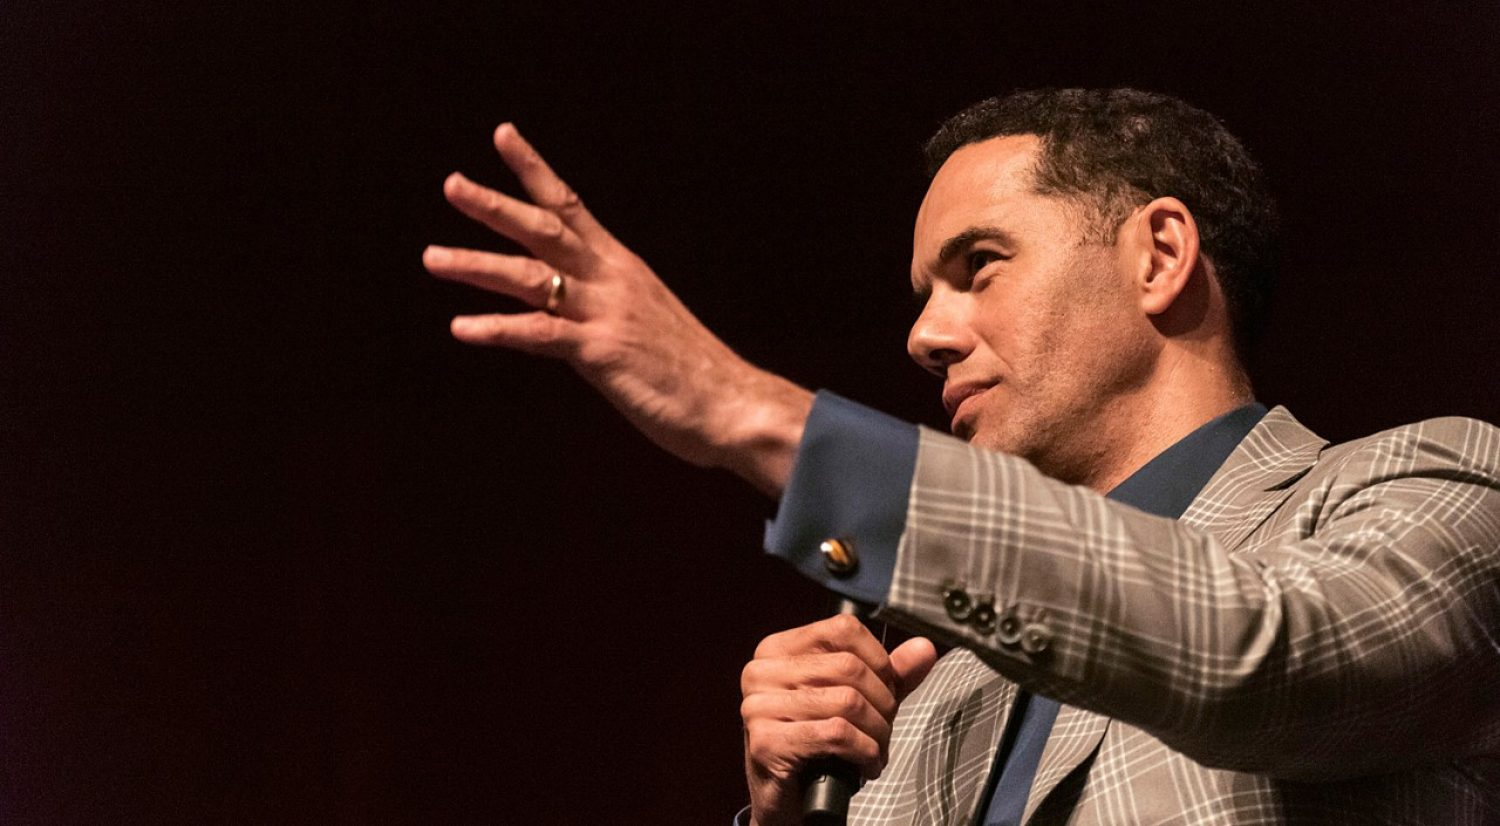 Diversity champion and author Steve Pemberton '89 chats with BC students